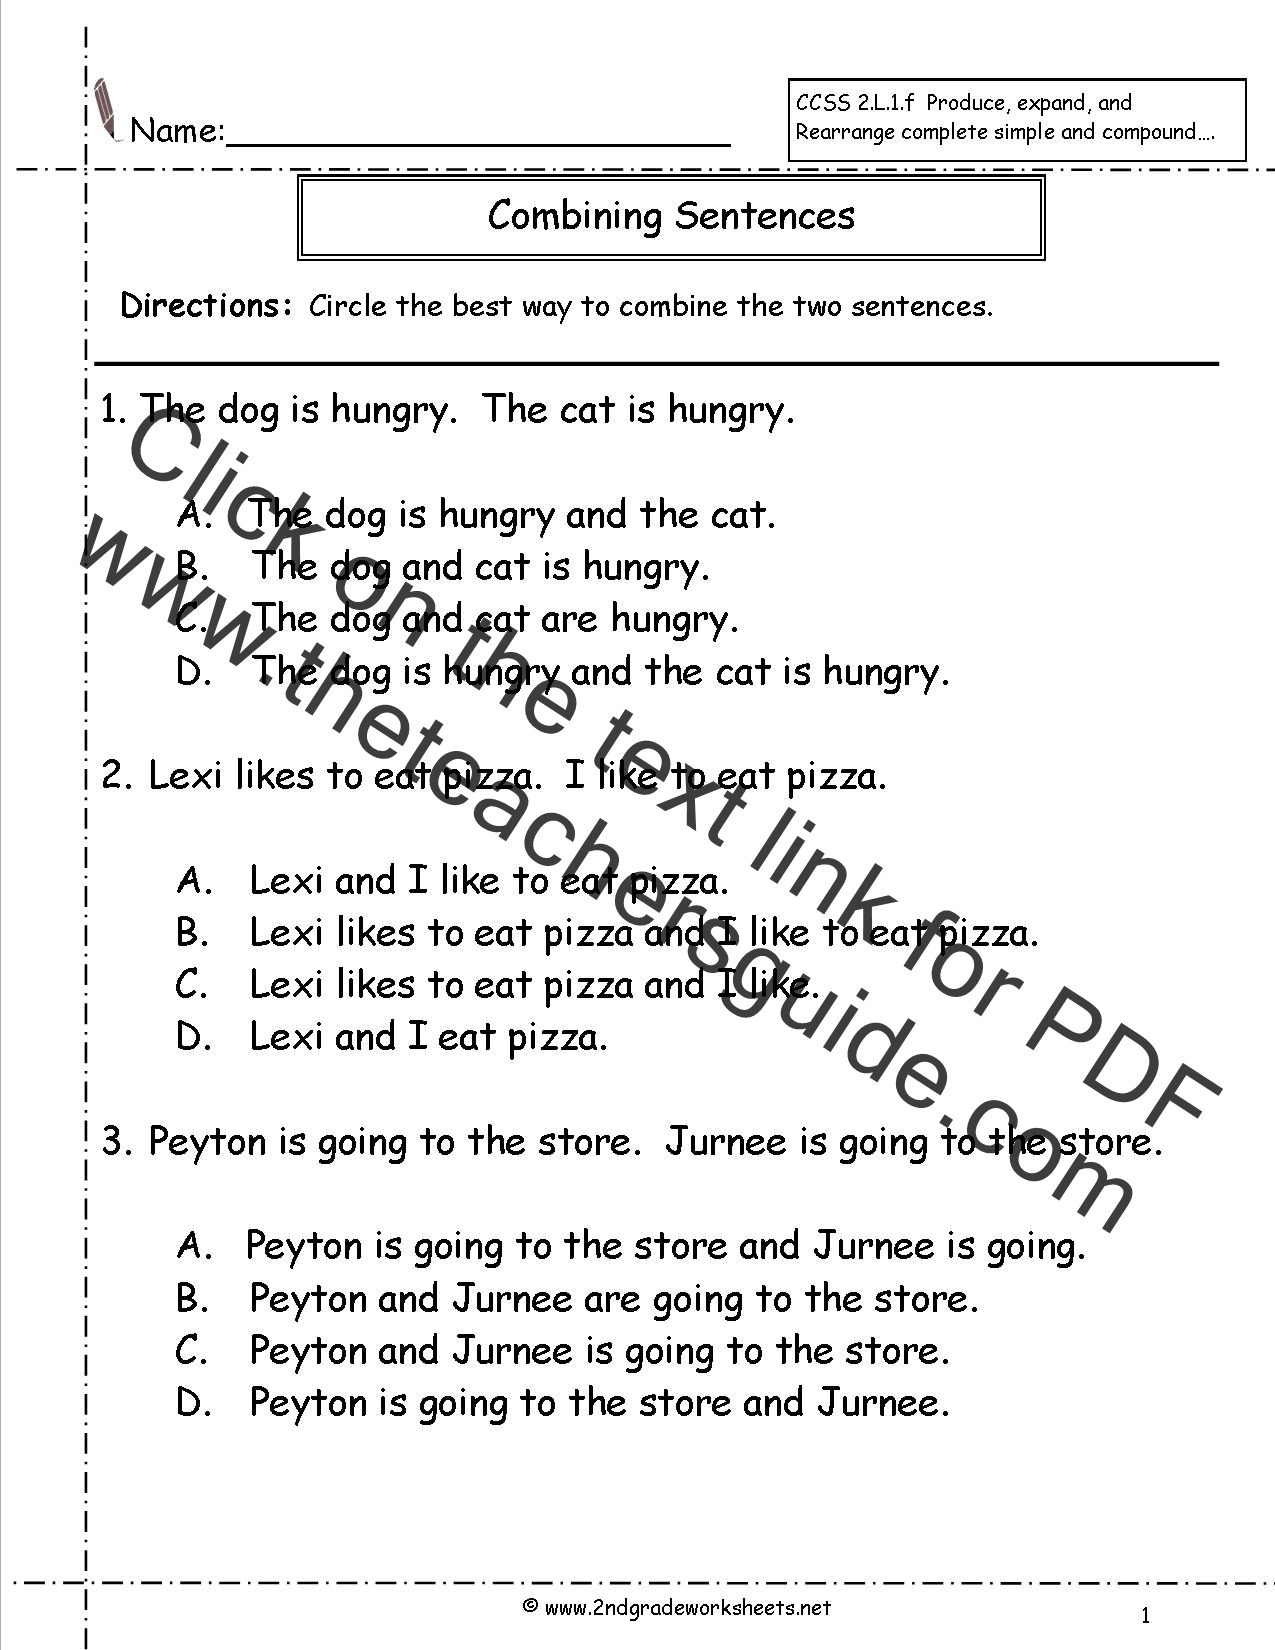 Printables Correct Sentences Worksheet second grade sentences worksheets ccss 2 l 1 f combining worksheet